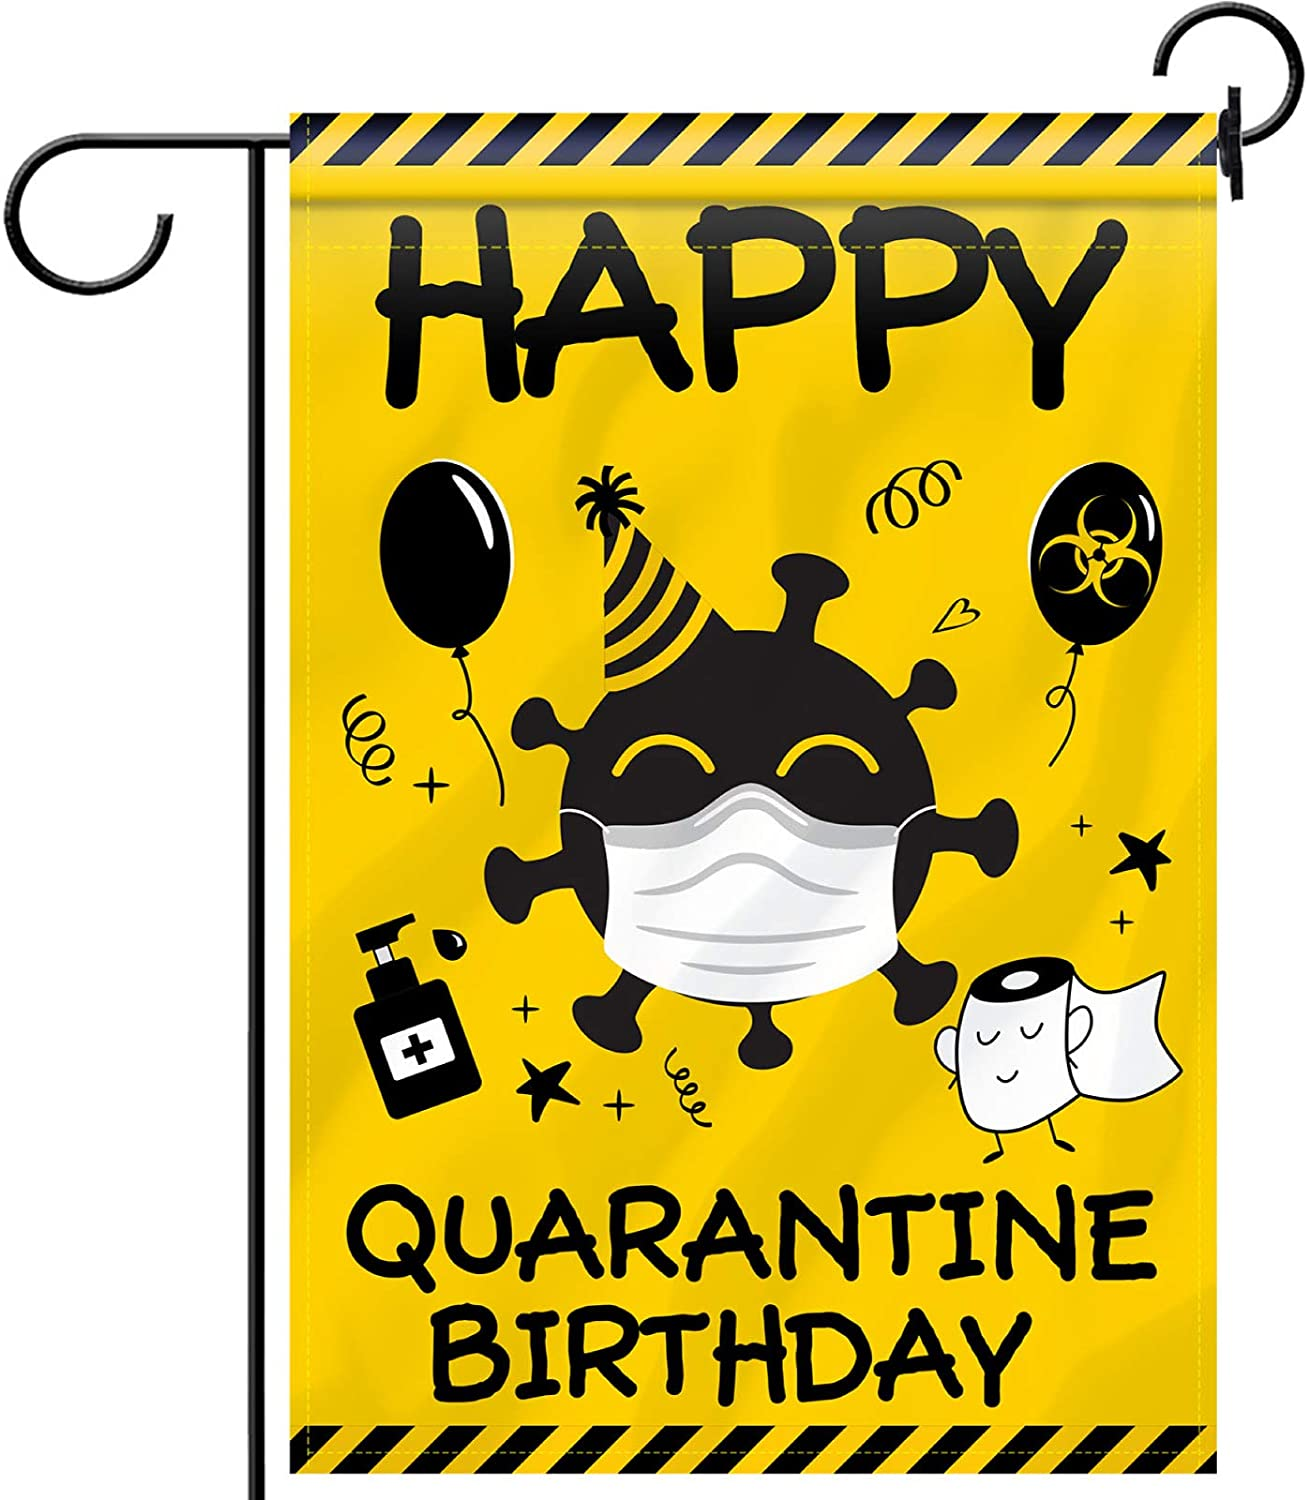 Quarantine Birthday Garden Flag Funny Double-Sided Decorative Flag with Toilet Paper Pattern Fabric House Yard Welcome Flag for Happy Quarantine Birthday Party Decoration, 12.6 x 18.5 Inch